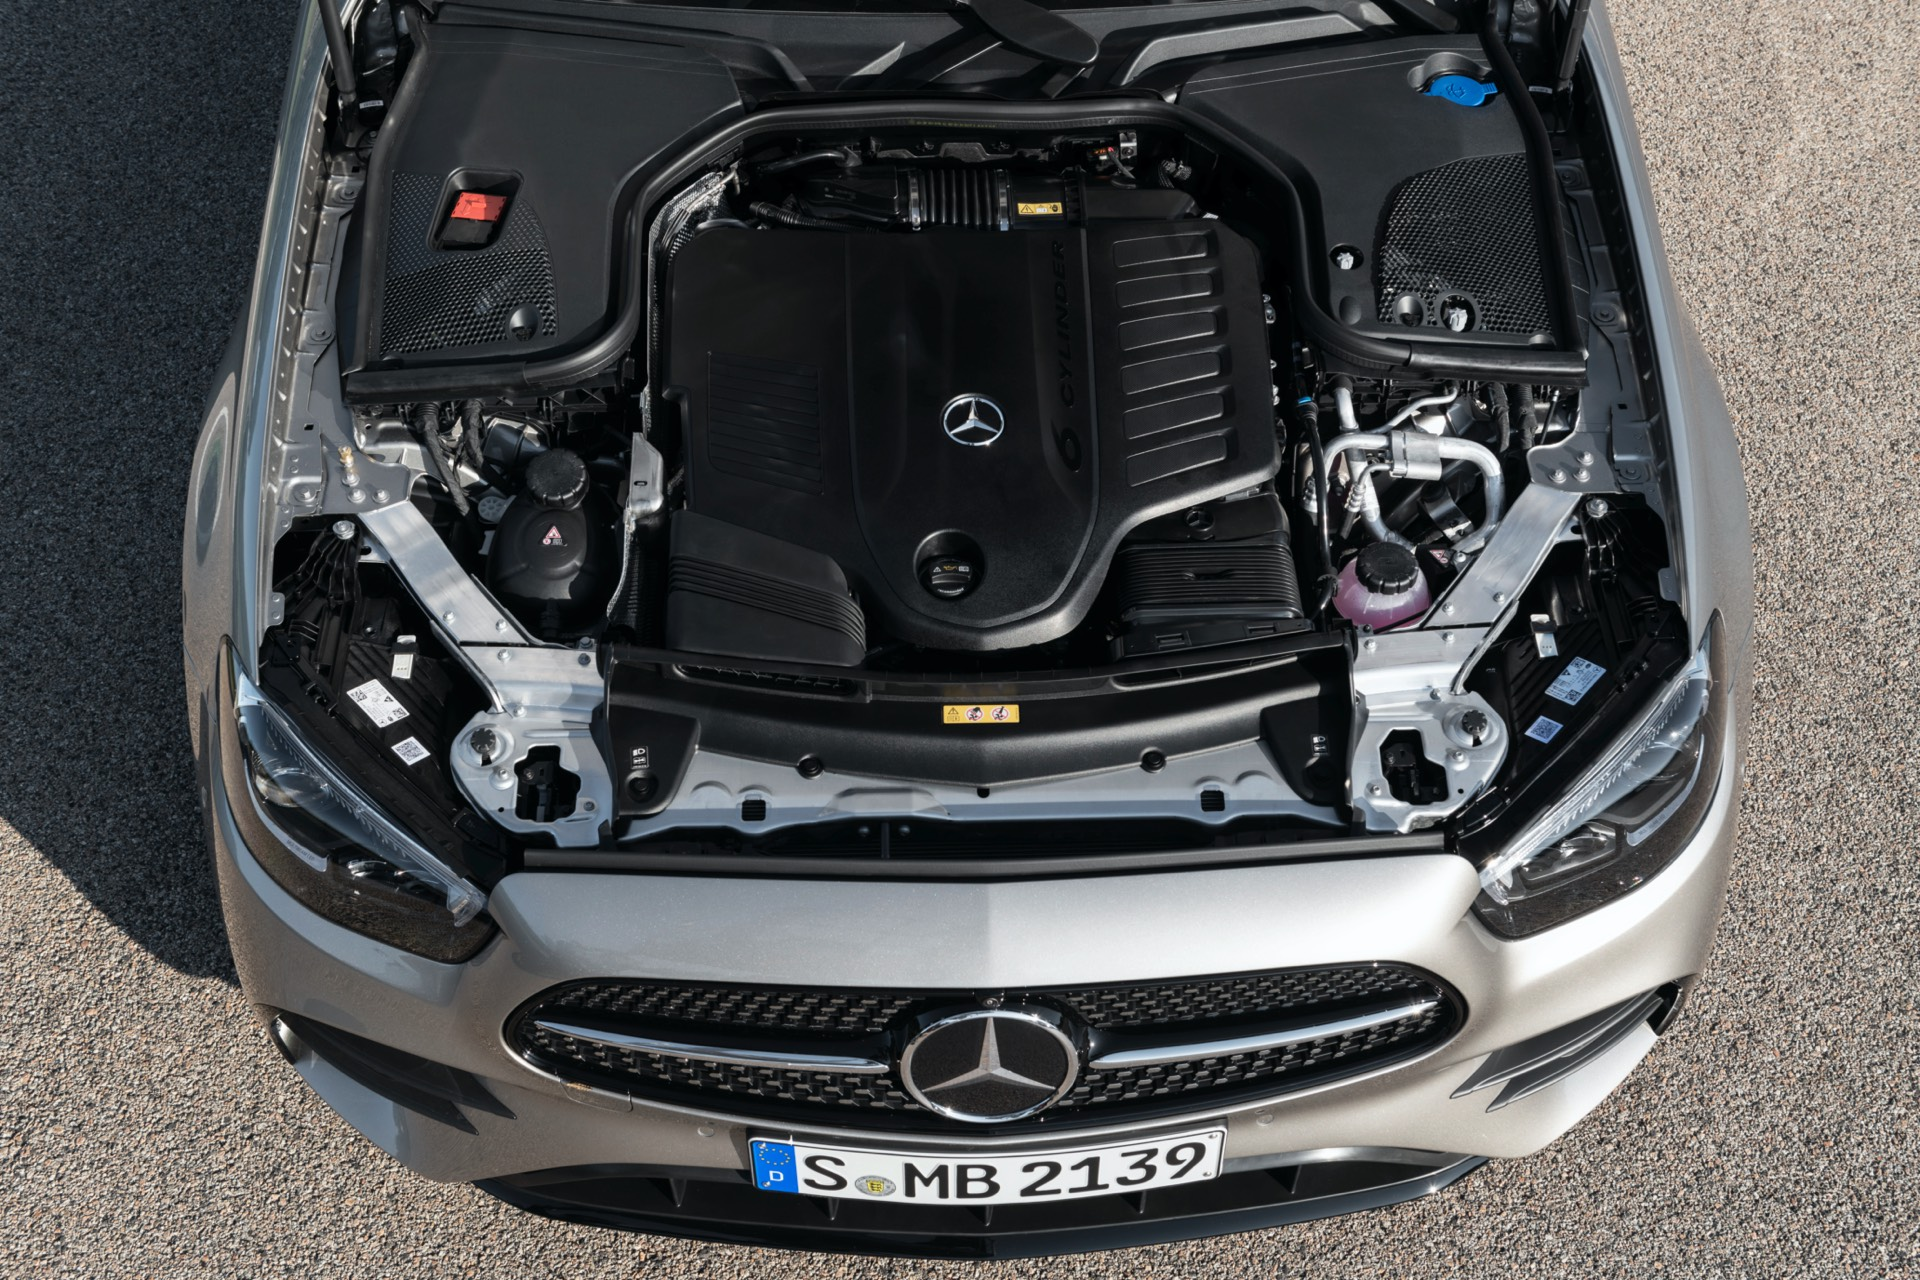 Mercedes-Benz E Class Facelift Engine